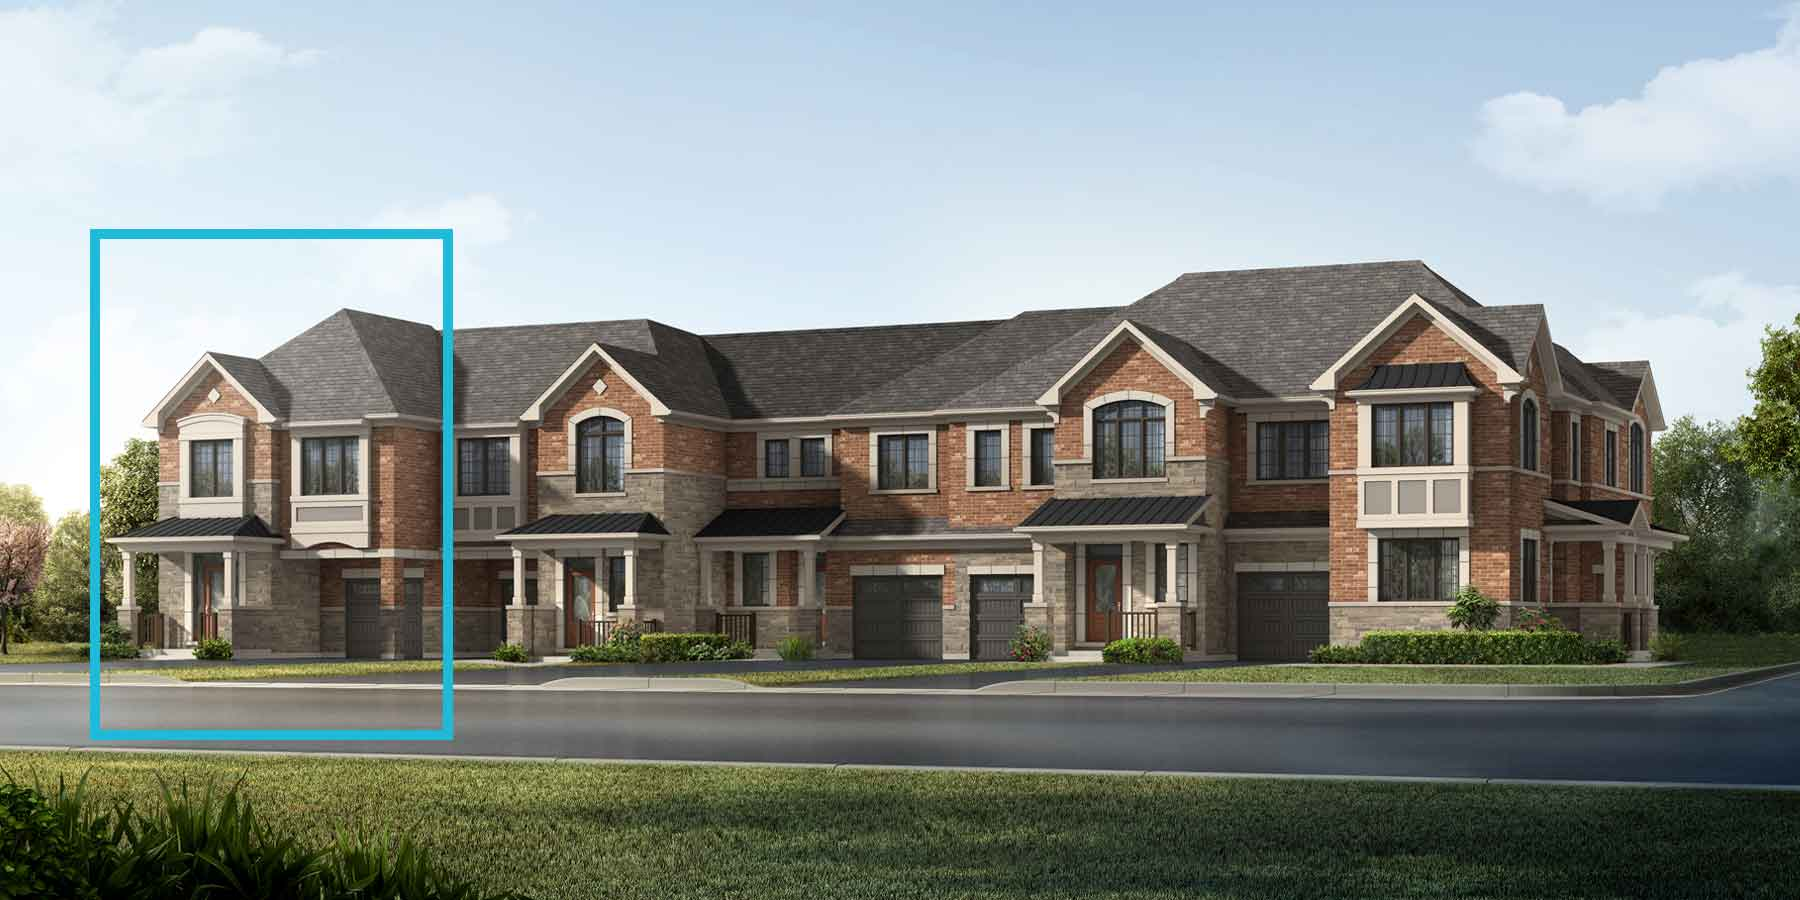 Shamrock End Plan TownHomes at Springwater in Markham Ontario by Mattamy Homes